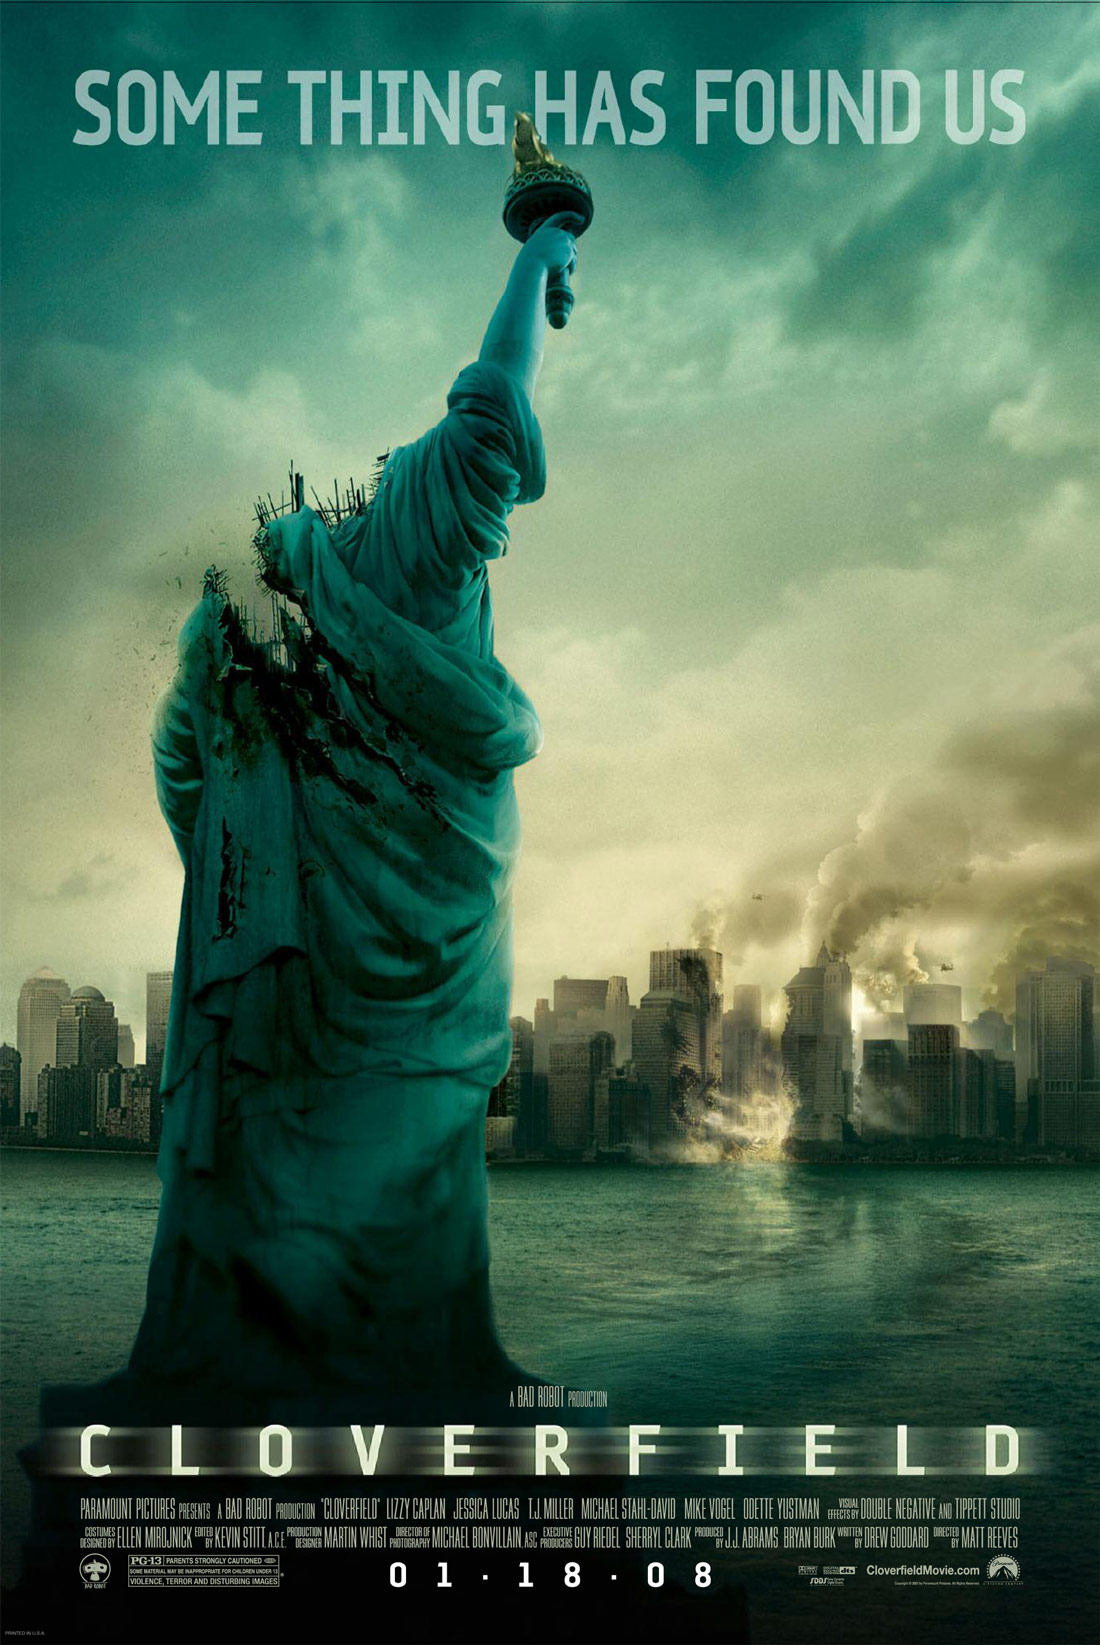 http://images4.wikia.nocookie.net/__cb20080717091160/cloverfield/images/archive/3/34/20080717091339!Cloverfield_poster.jpg